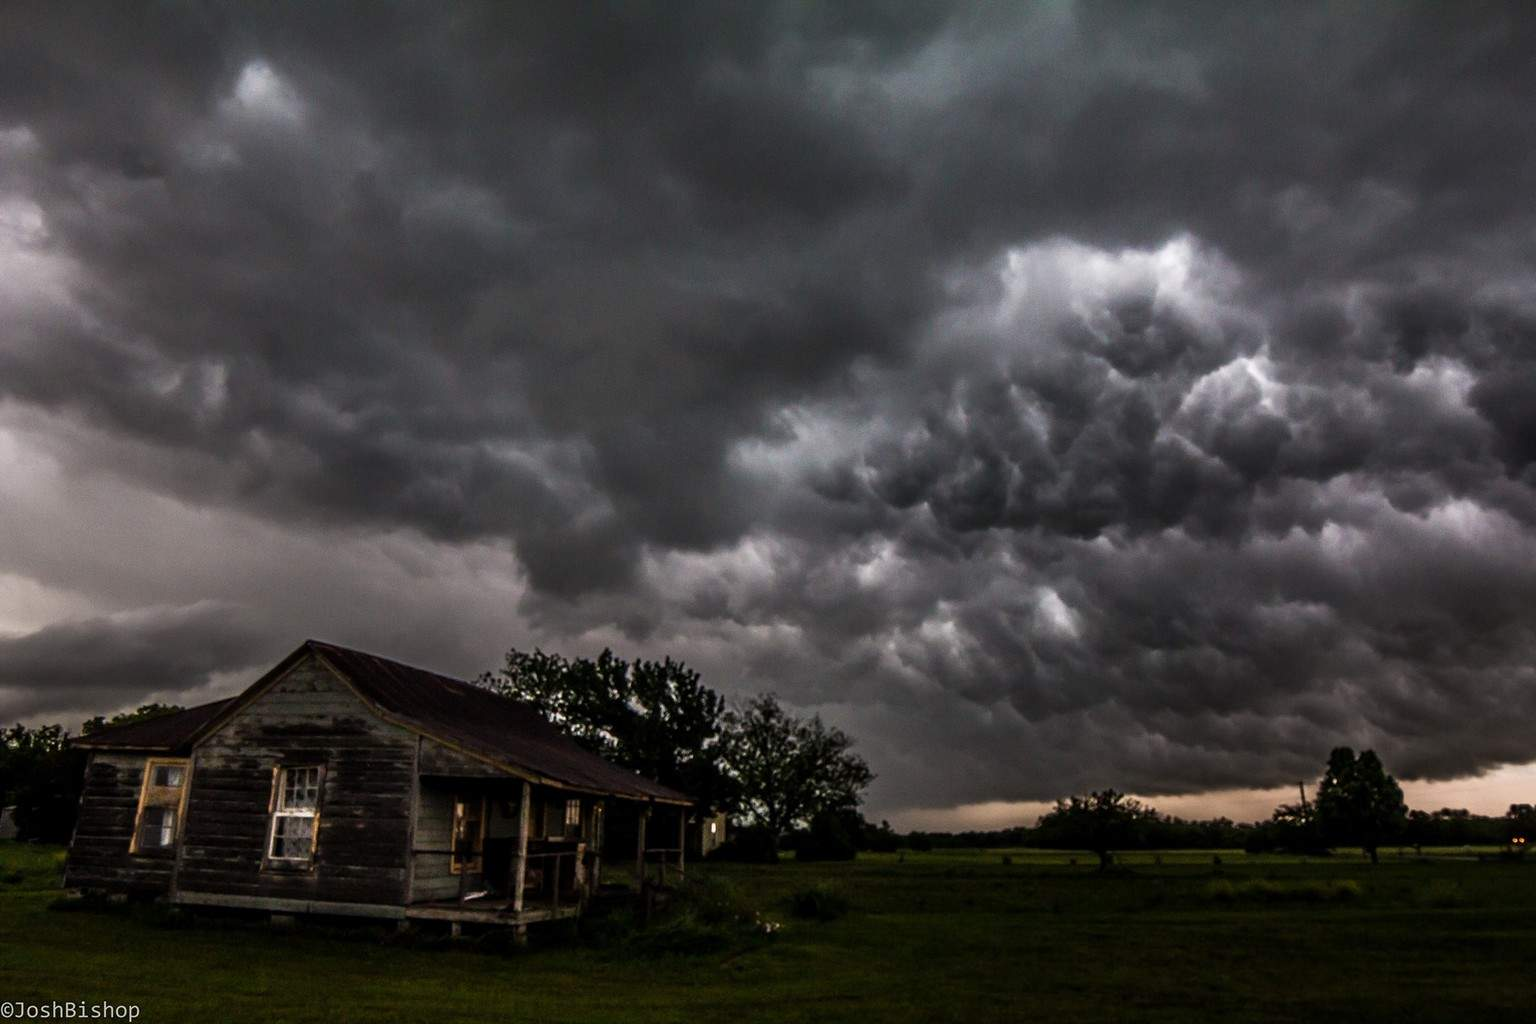 South of DFW/Alvarado Today 4.24.2015. Out ran a tornado warned storm and went south. Turned around after it was a little safer and came across this. Shot with Canon 60d and Rokinon 14mm. Was very dark when I took the shot so it's a little grainy.